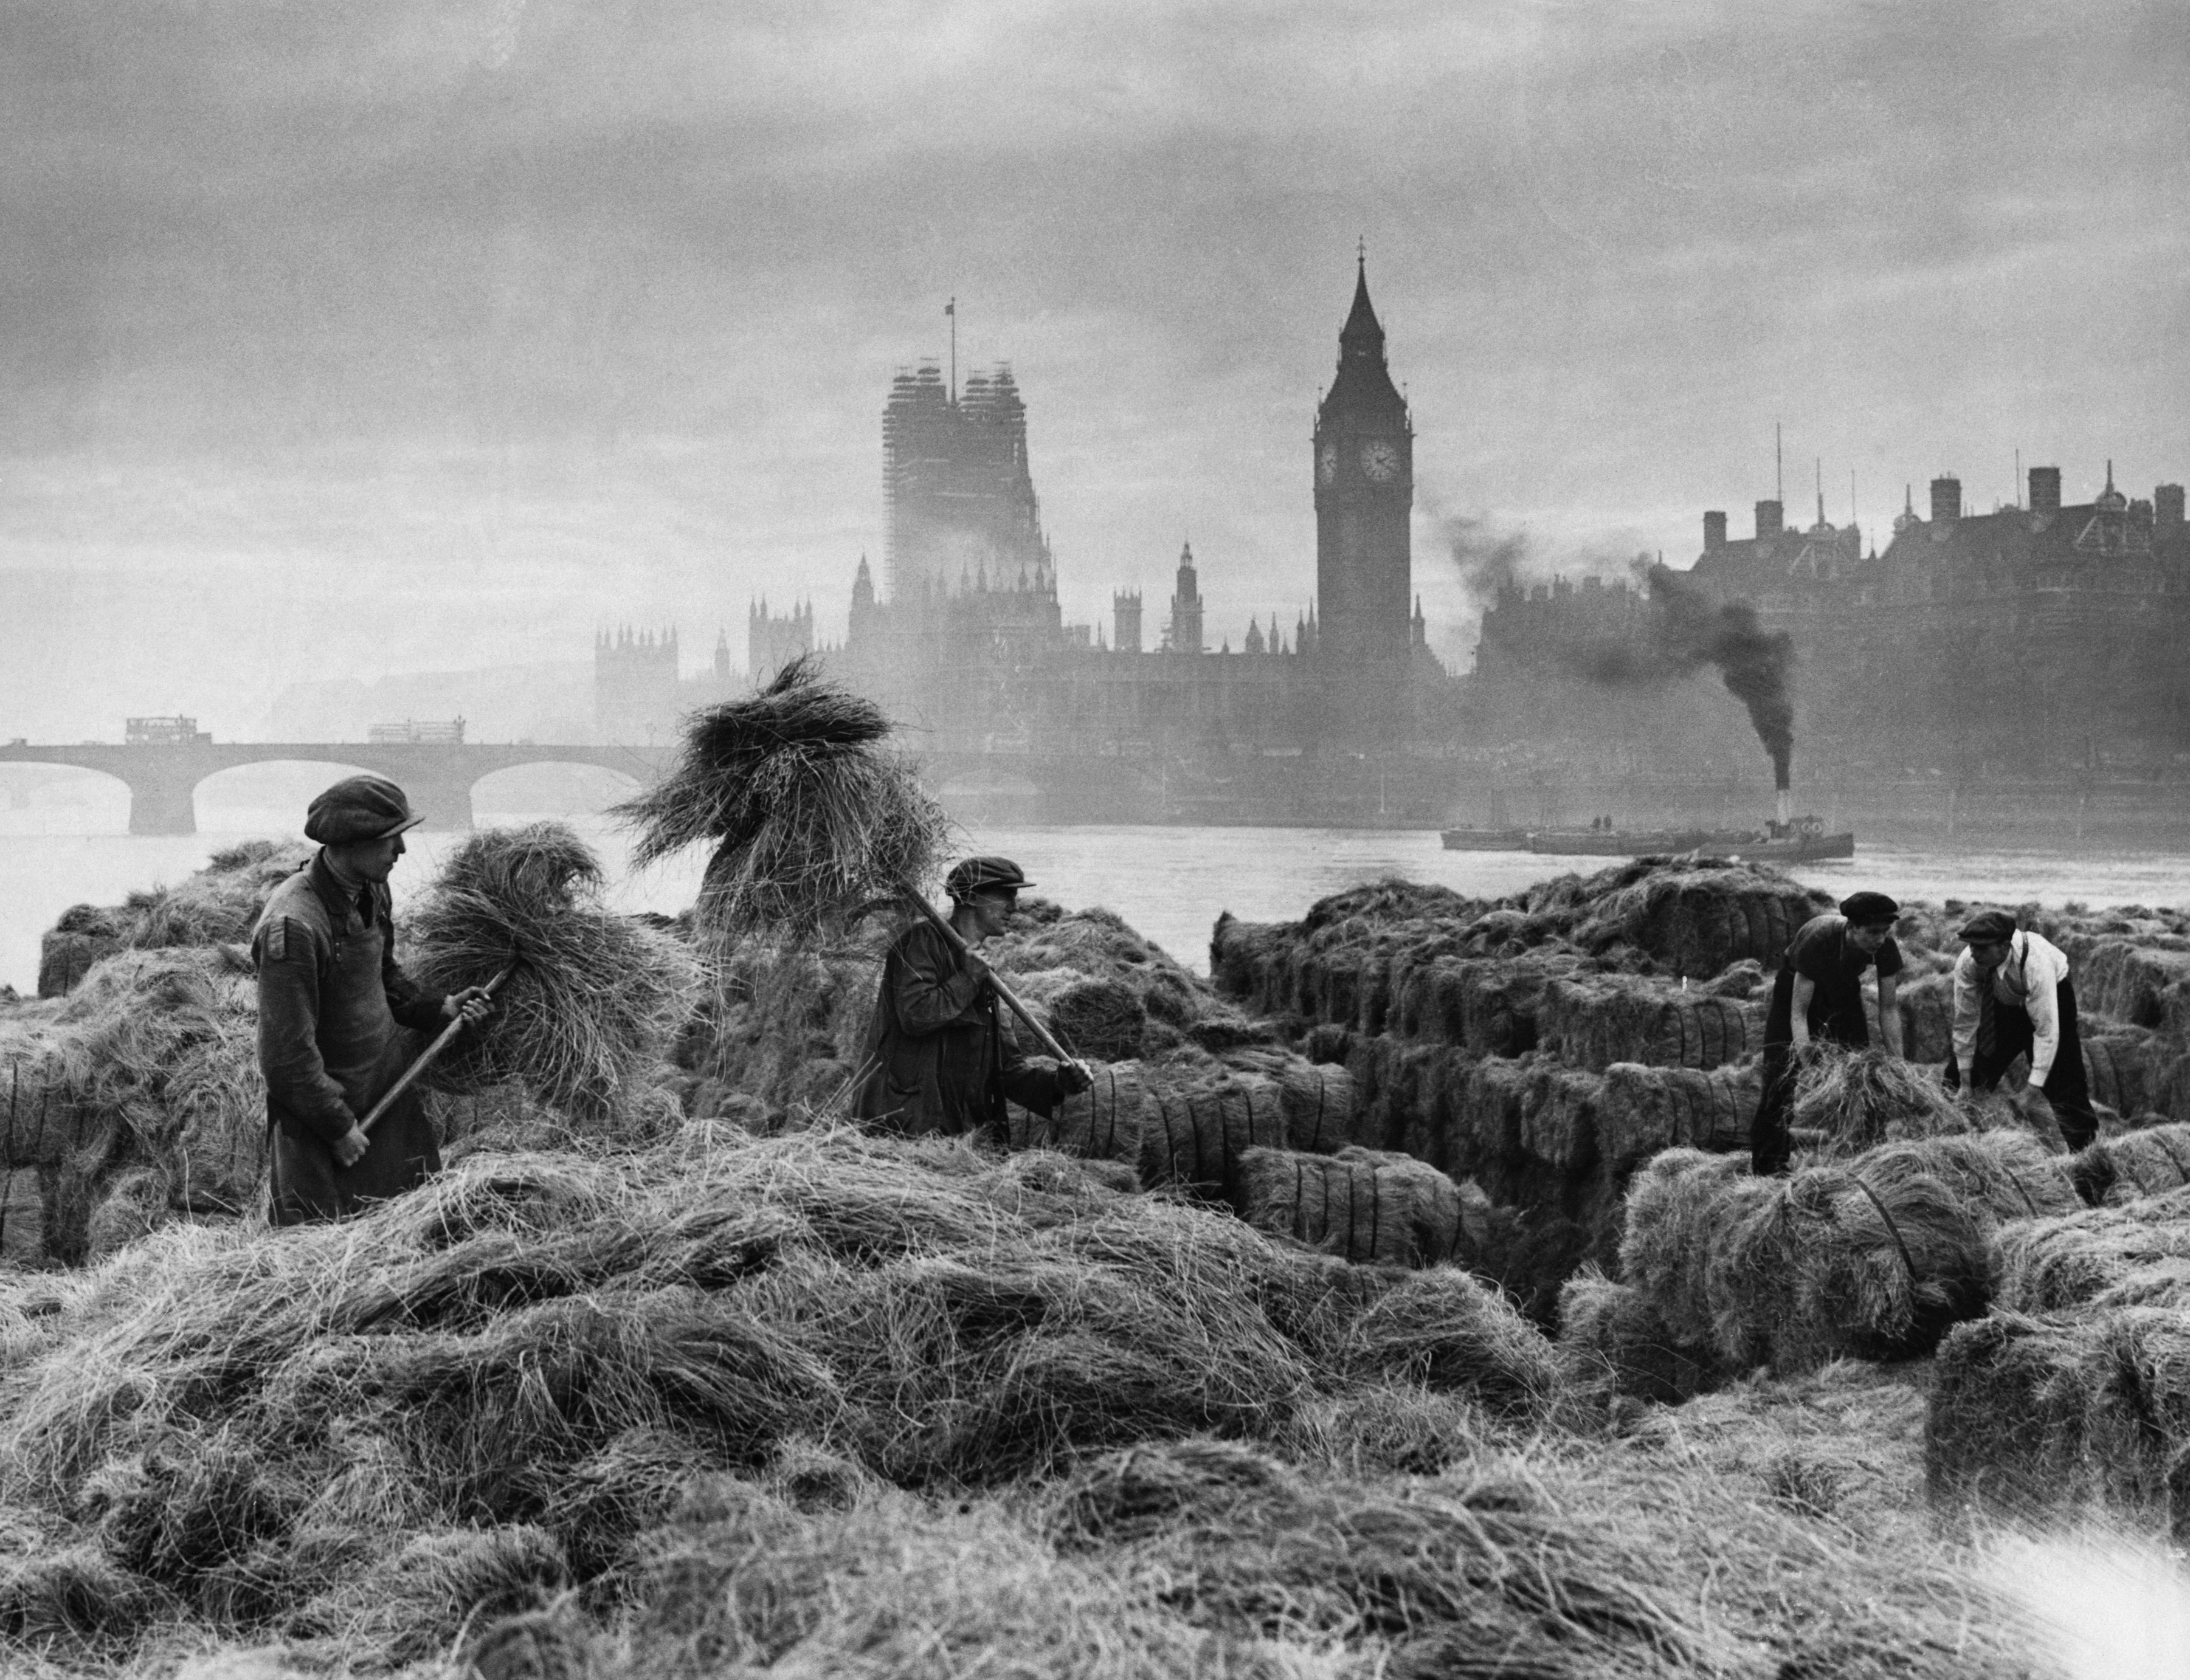 1938. Unloading hay at warehouses on the South Bank. London still had horses to feed. This seemingly rural scene is contrasted by a view of the Houses of Parliament in the background.